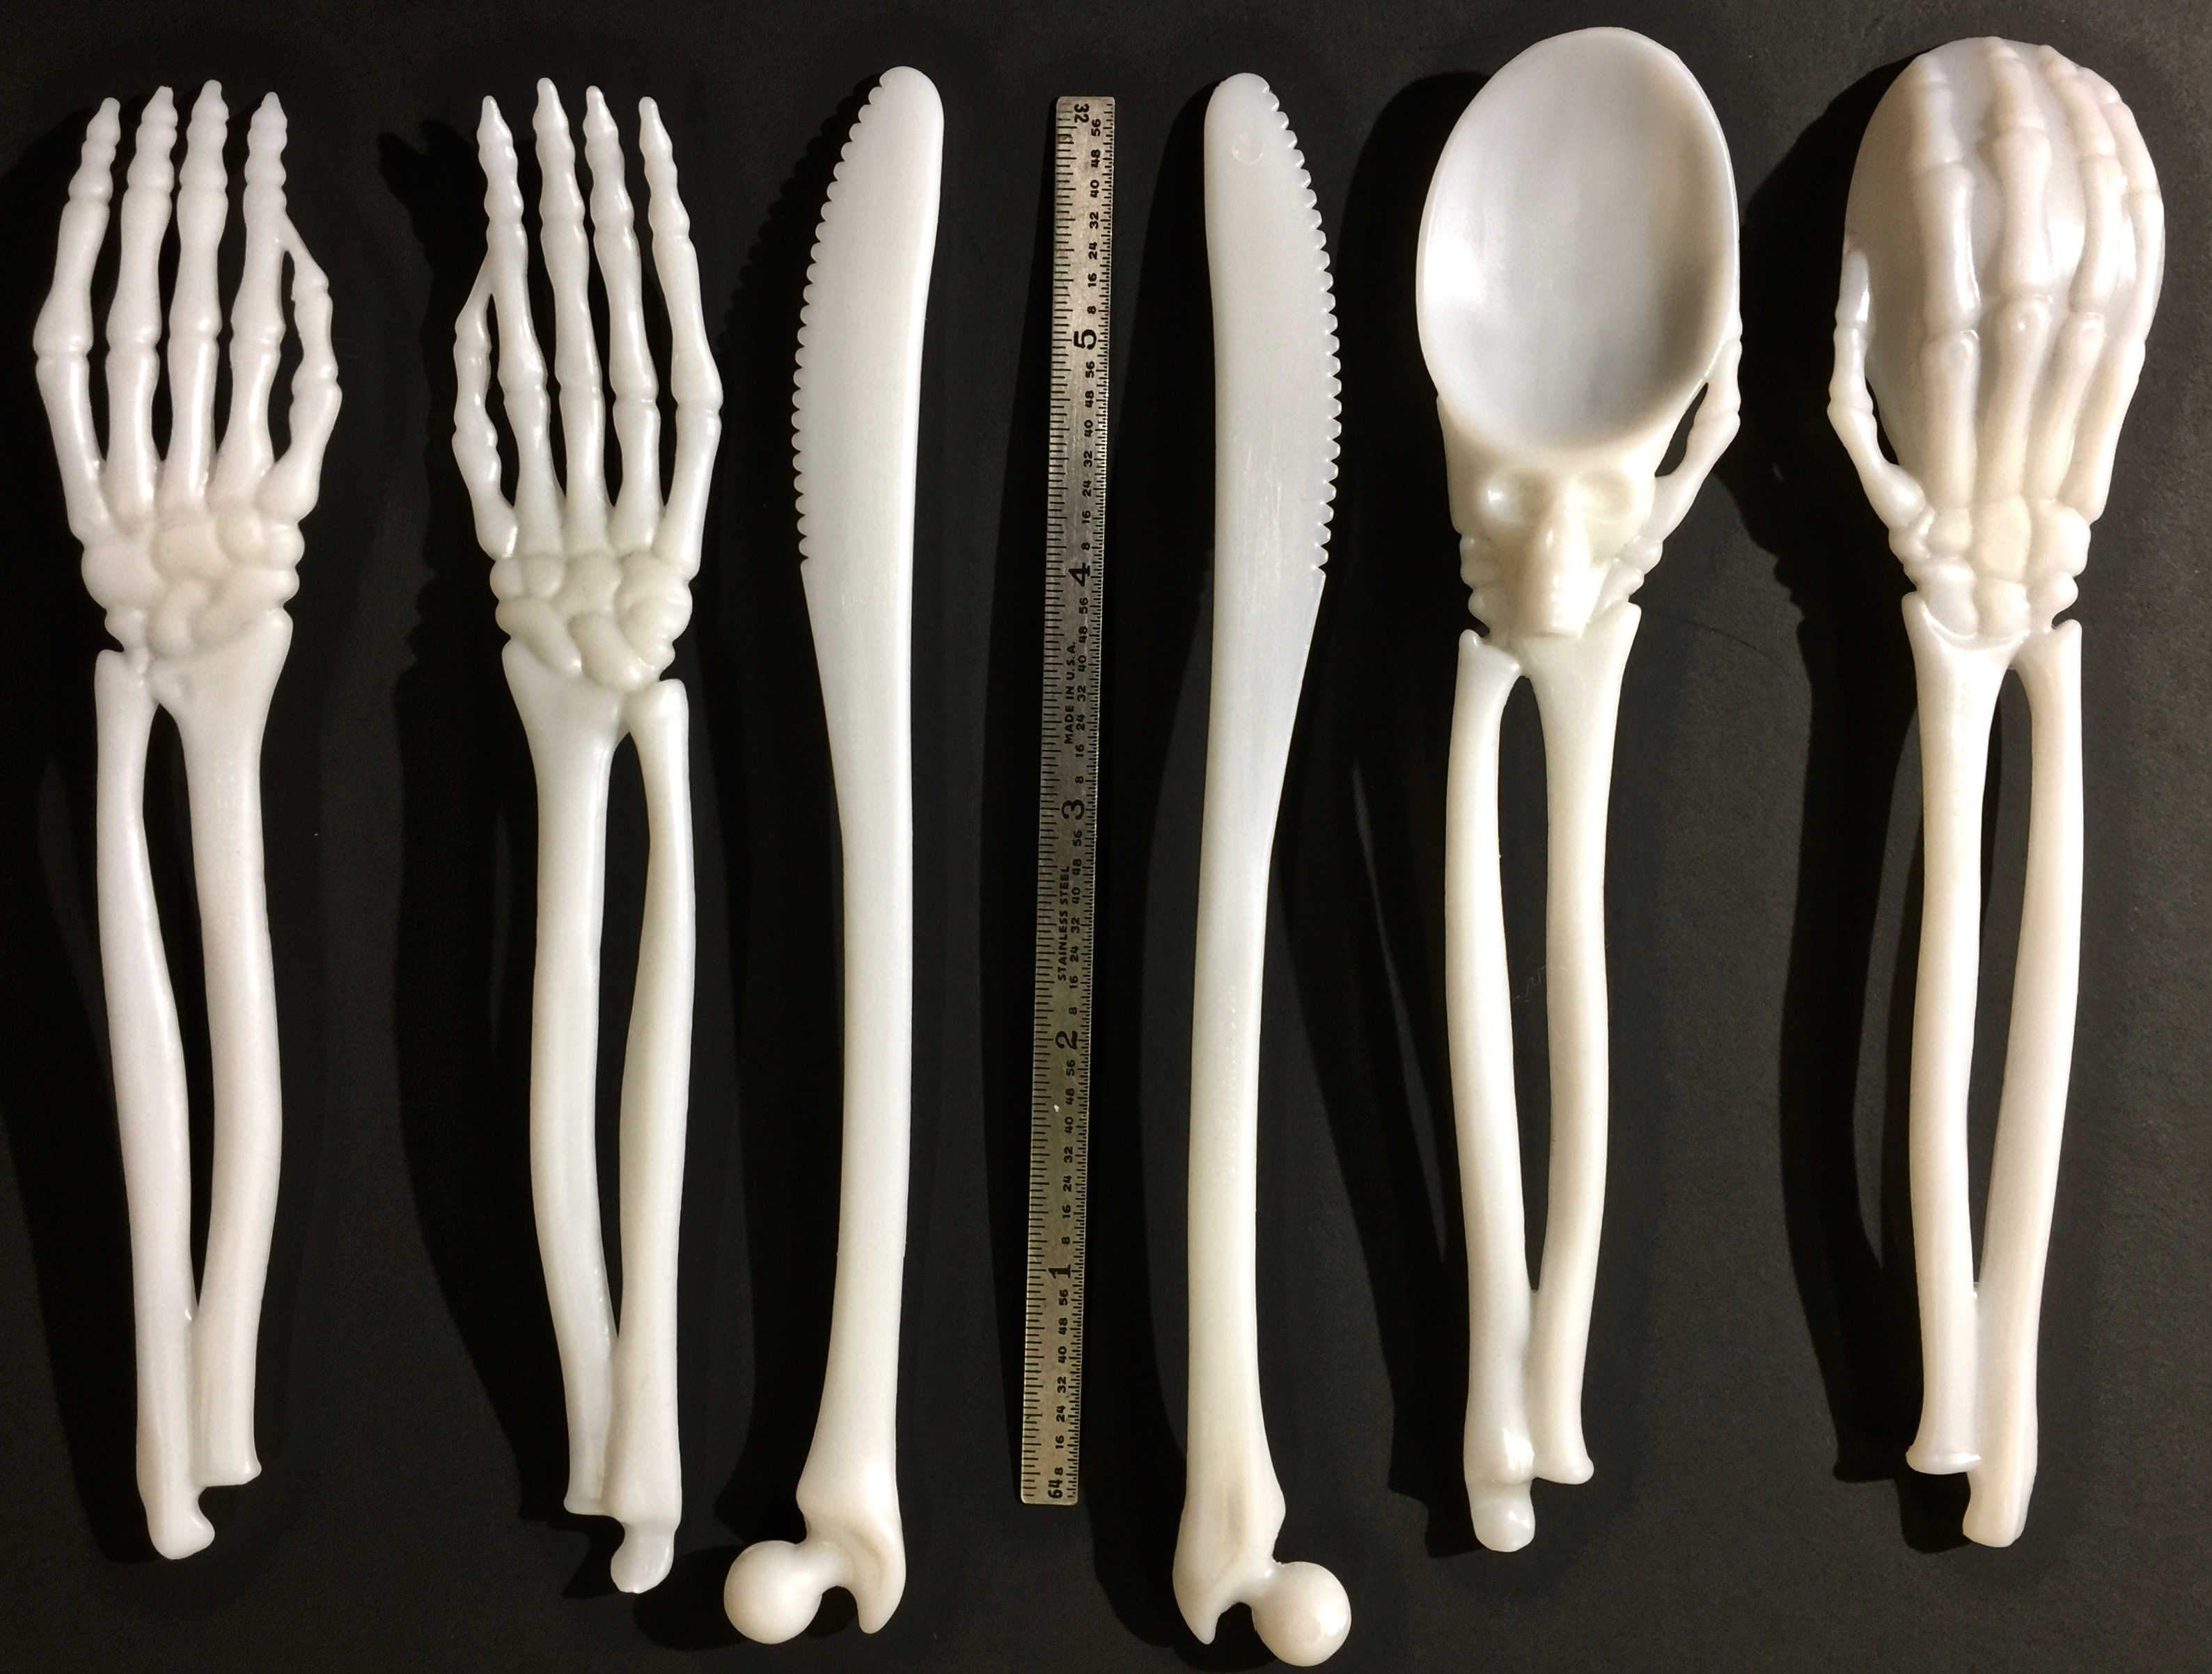 Front & Back views of Boneware cuttlery